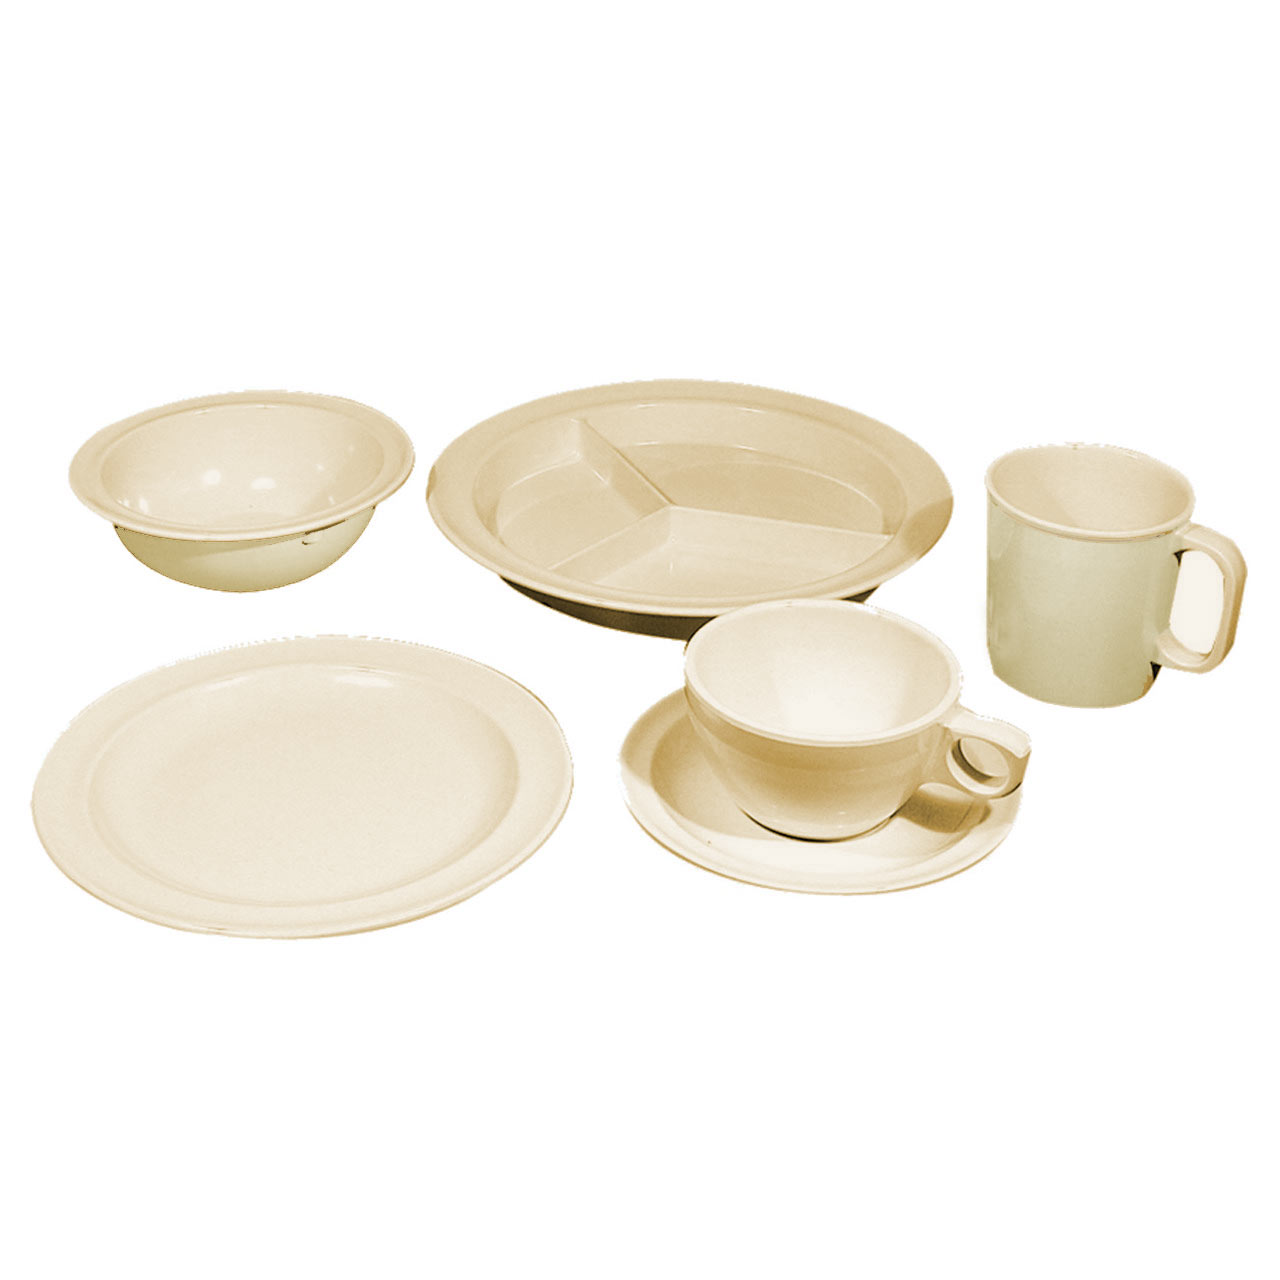 Melamine 6pc. Dinnerware Kit - click to view larger image